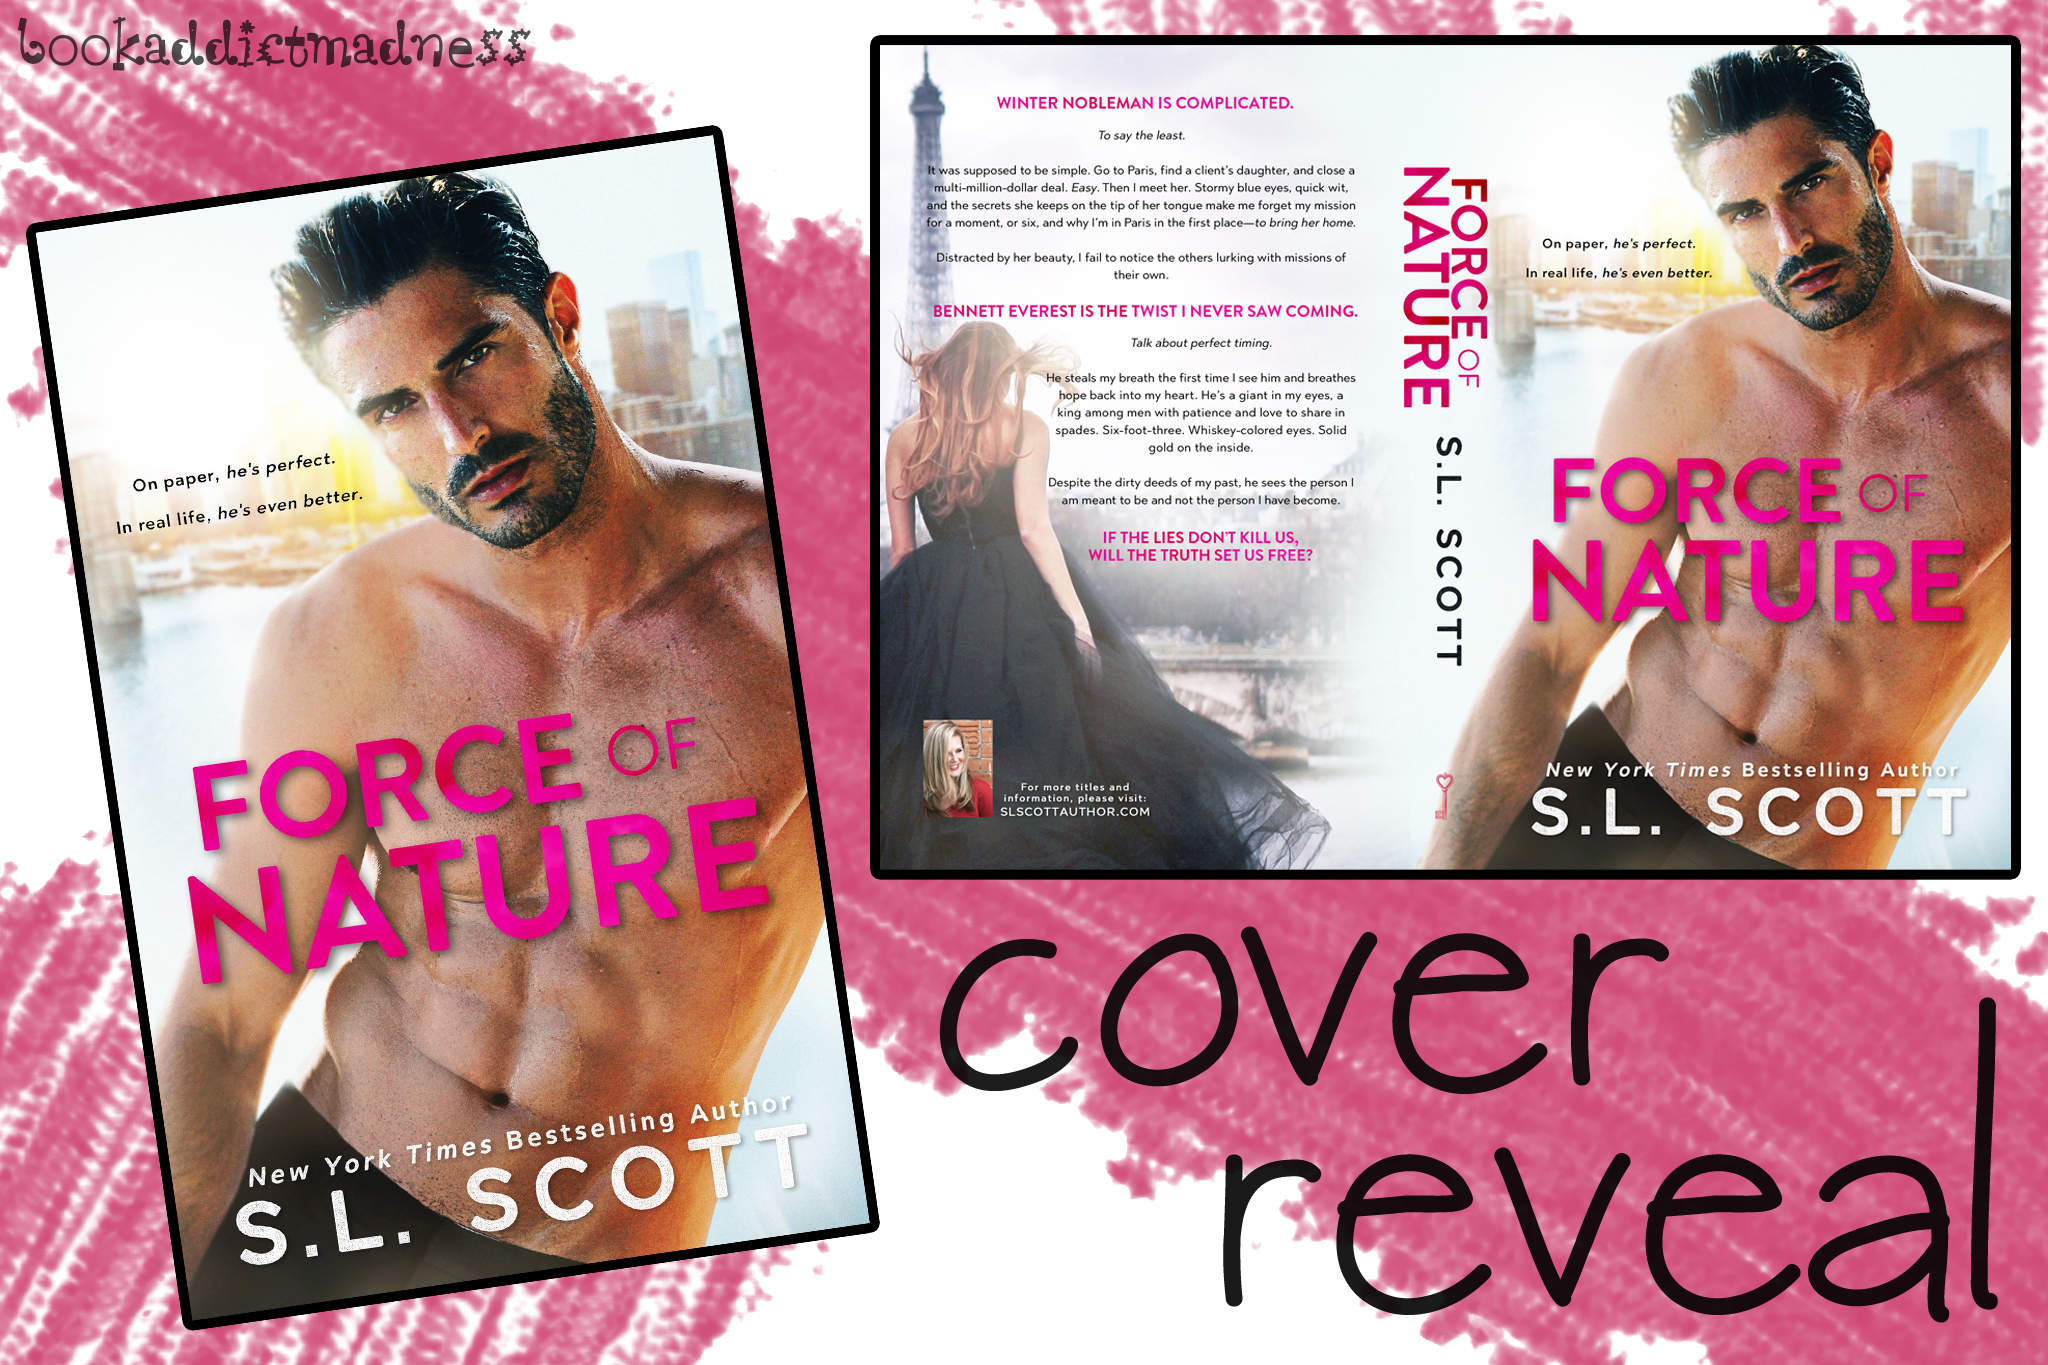 FORCE OF NATURE by S.L. Scott